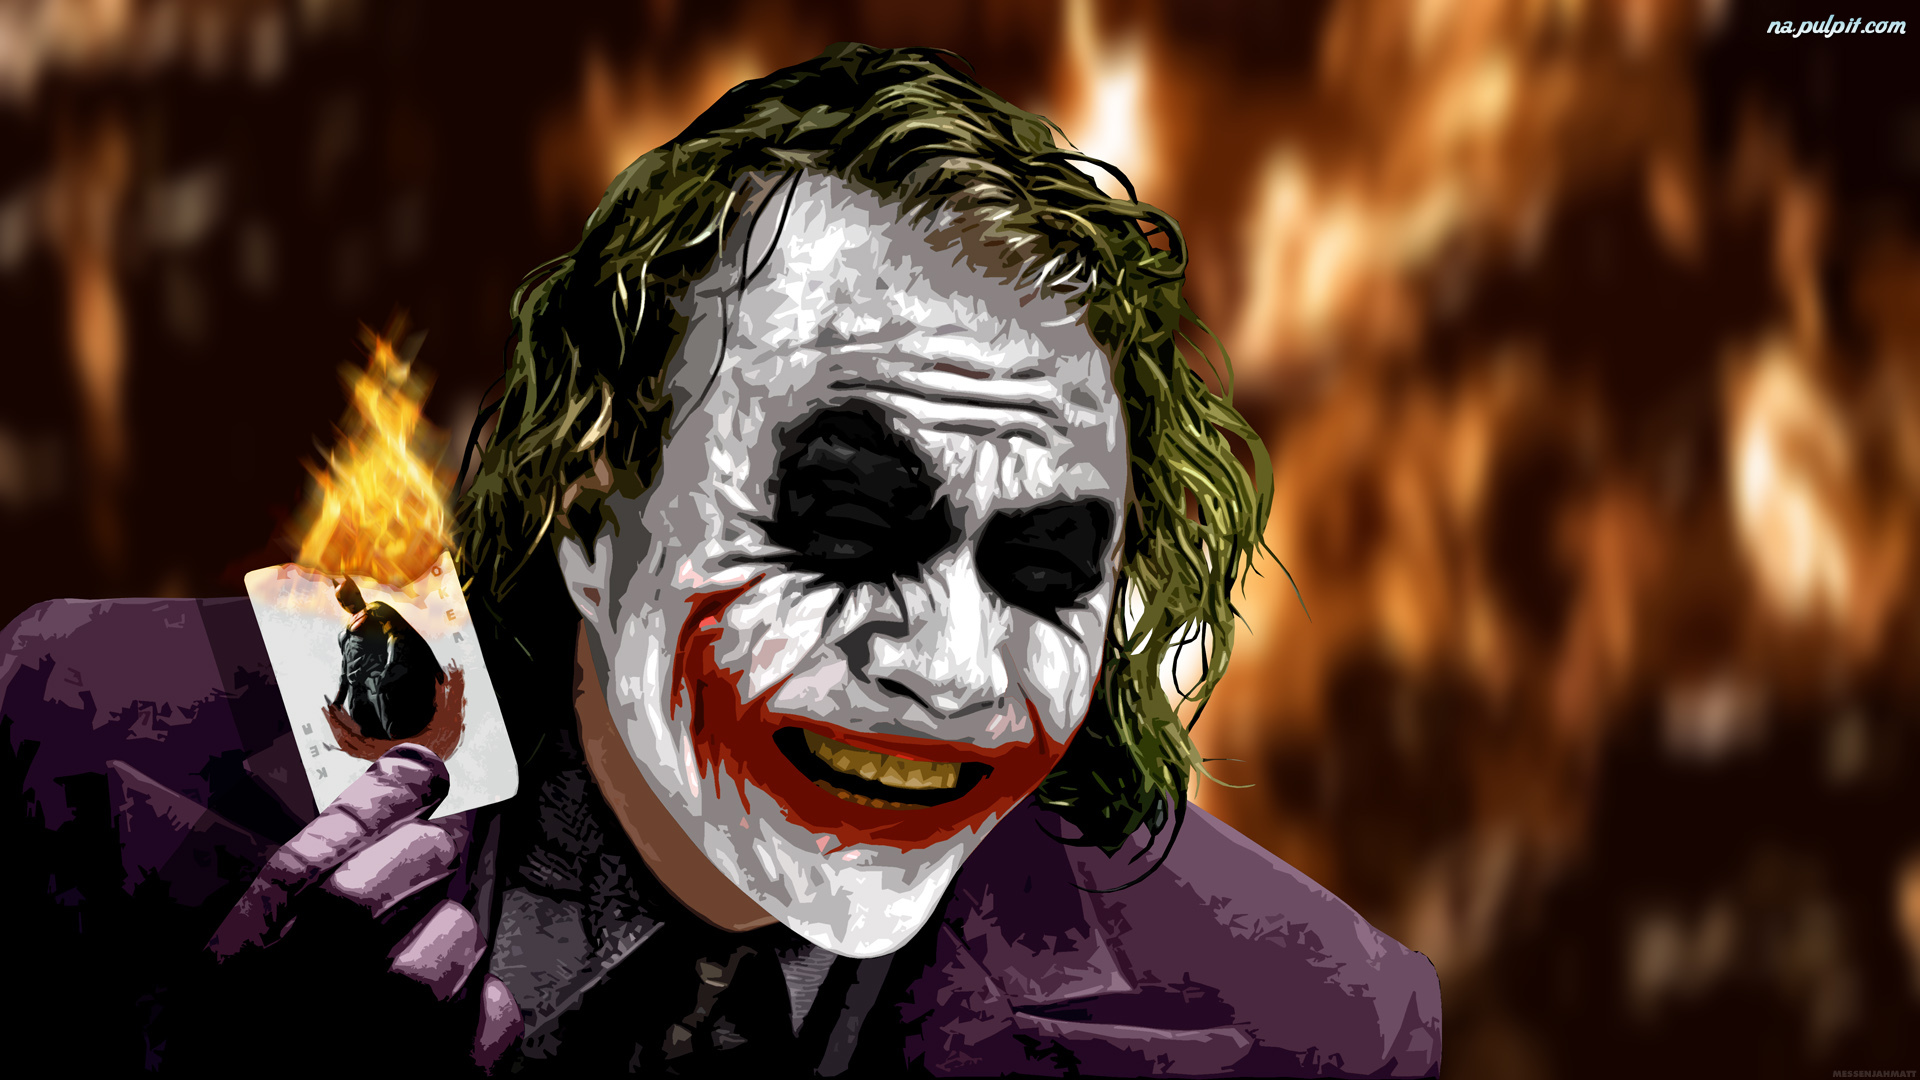 Joker, Batman Dark Knight, Film, Grafika, Mroczny rycerz